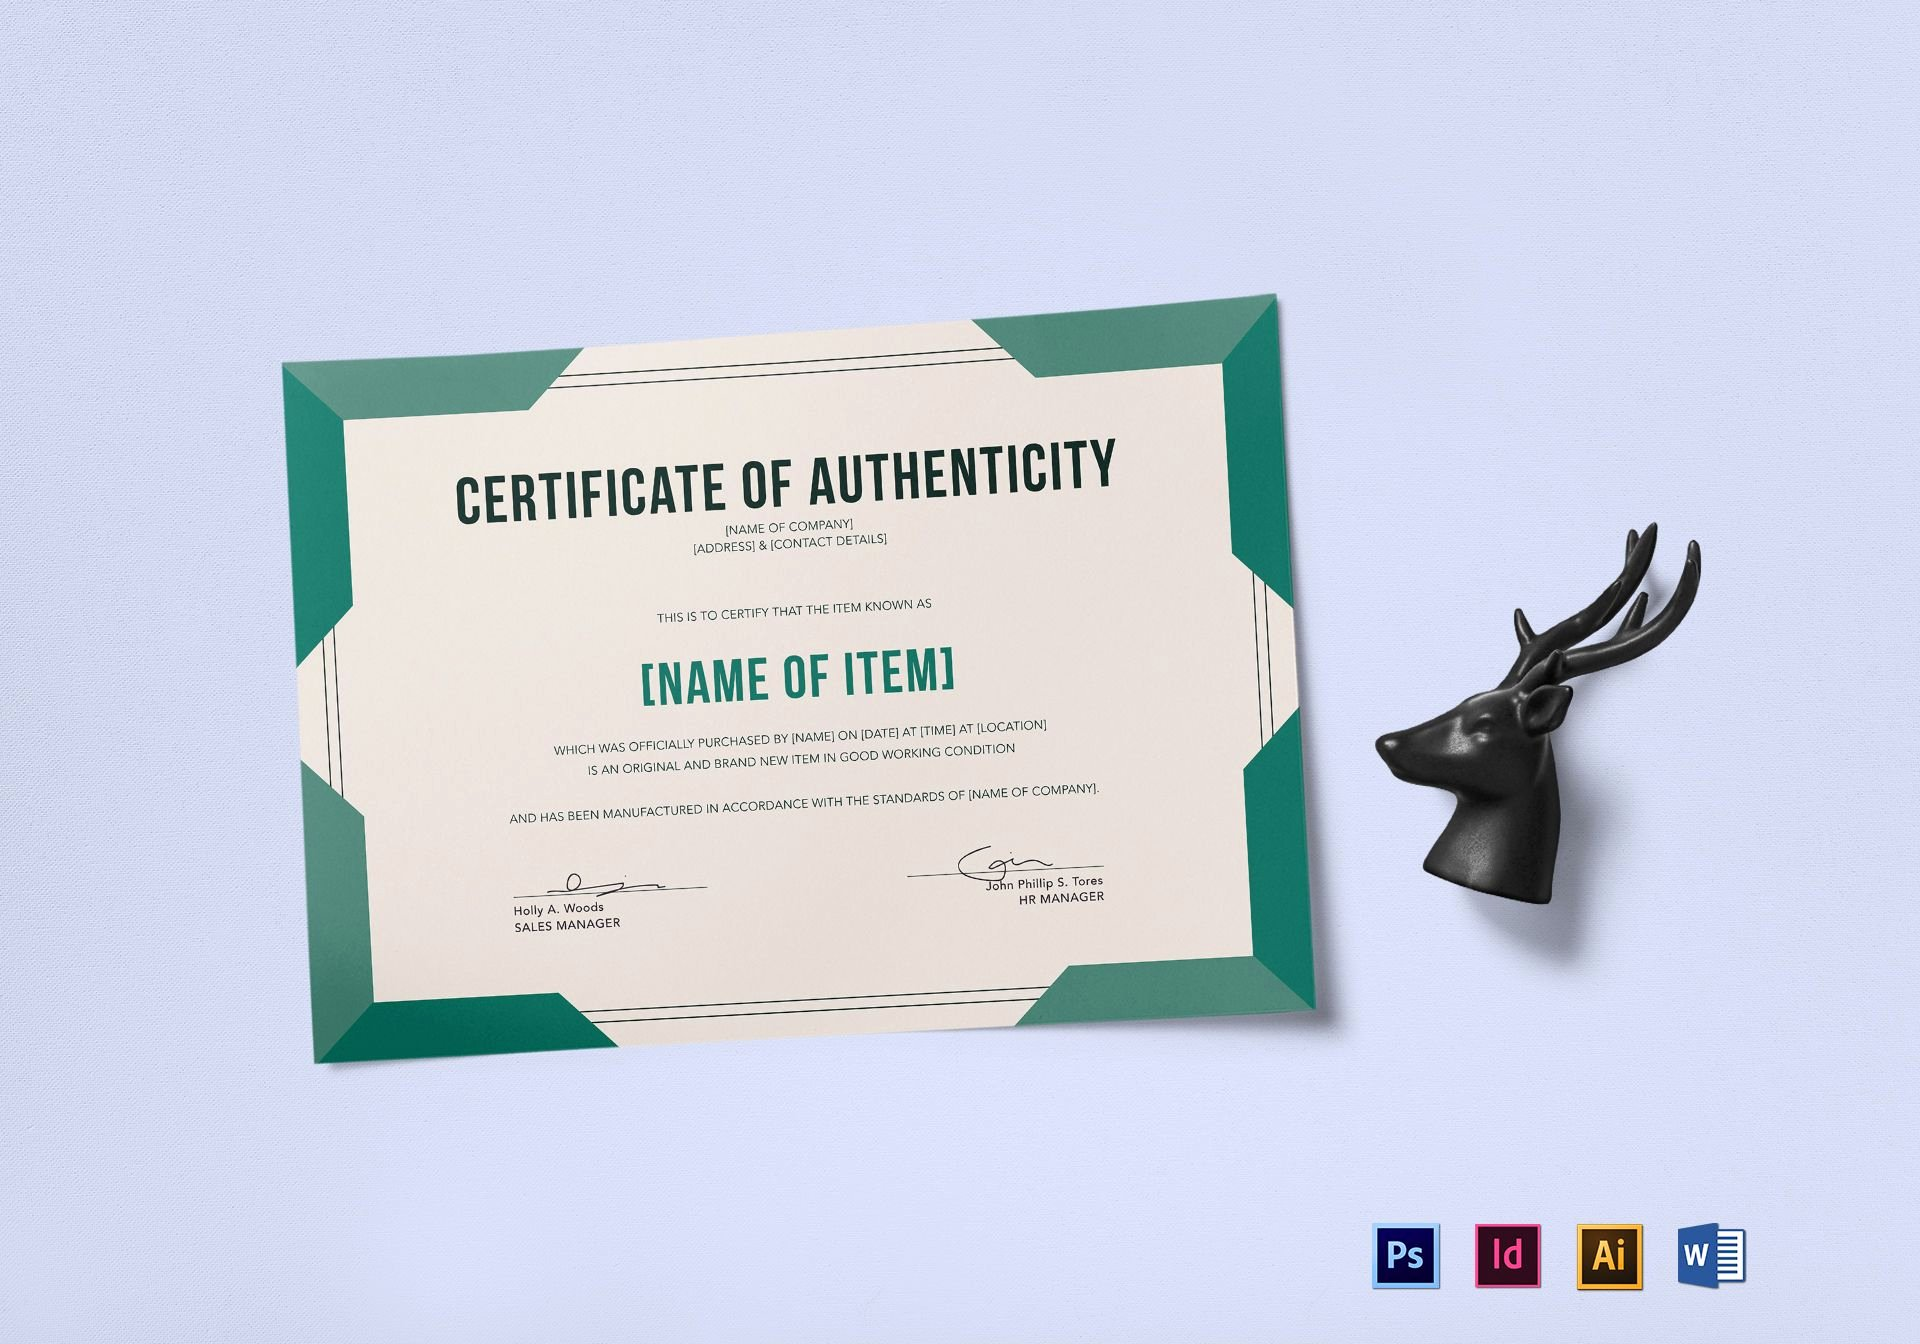 Free Printable Certificate Of Authenticity Templates Fresh Elegant Certificate Of Authenticity Design Template In Psd